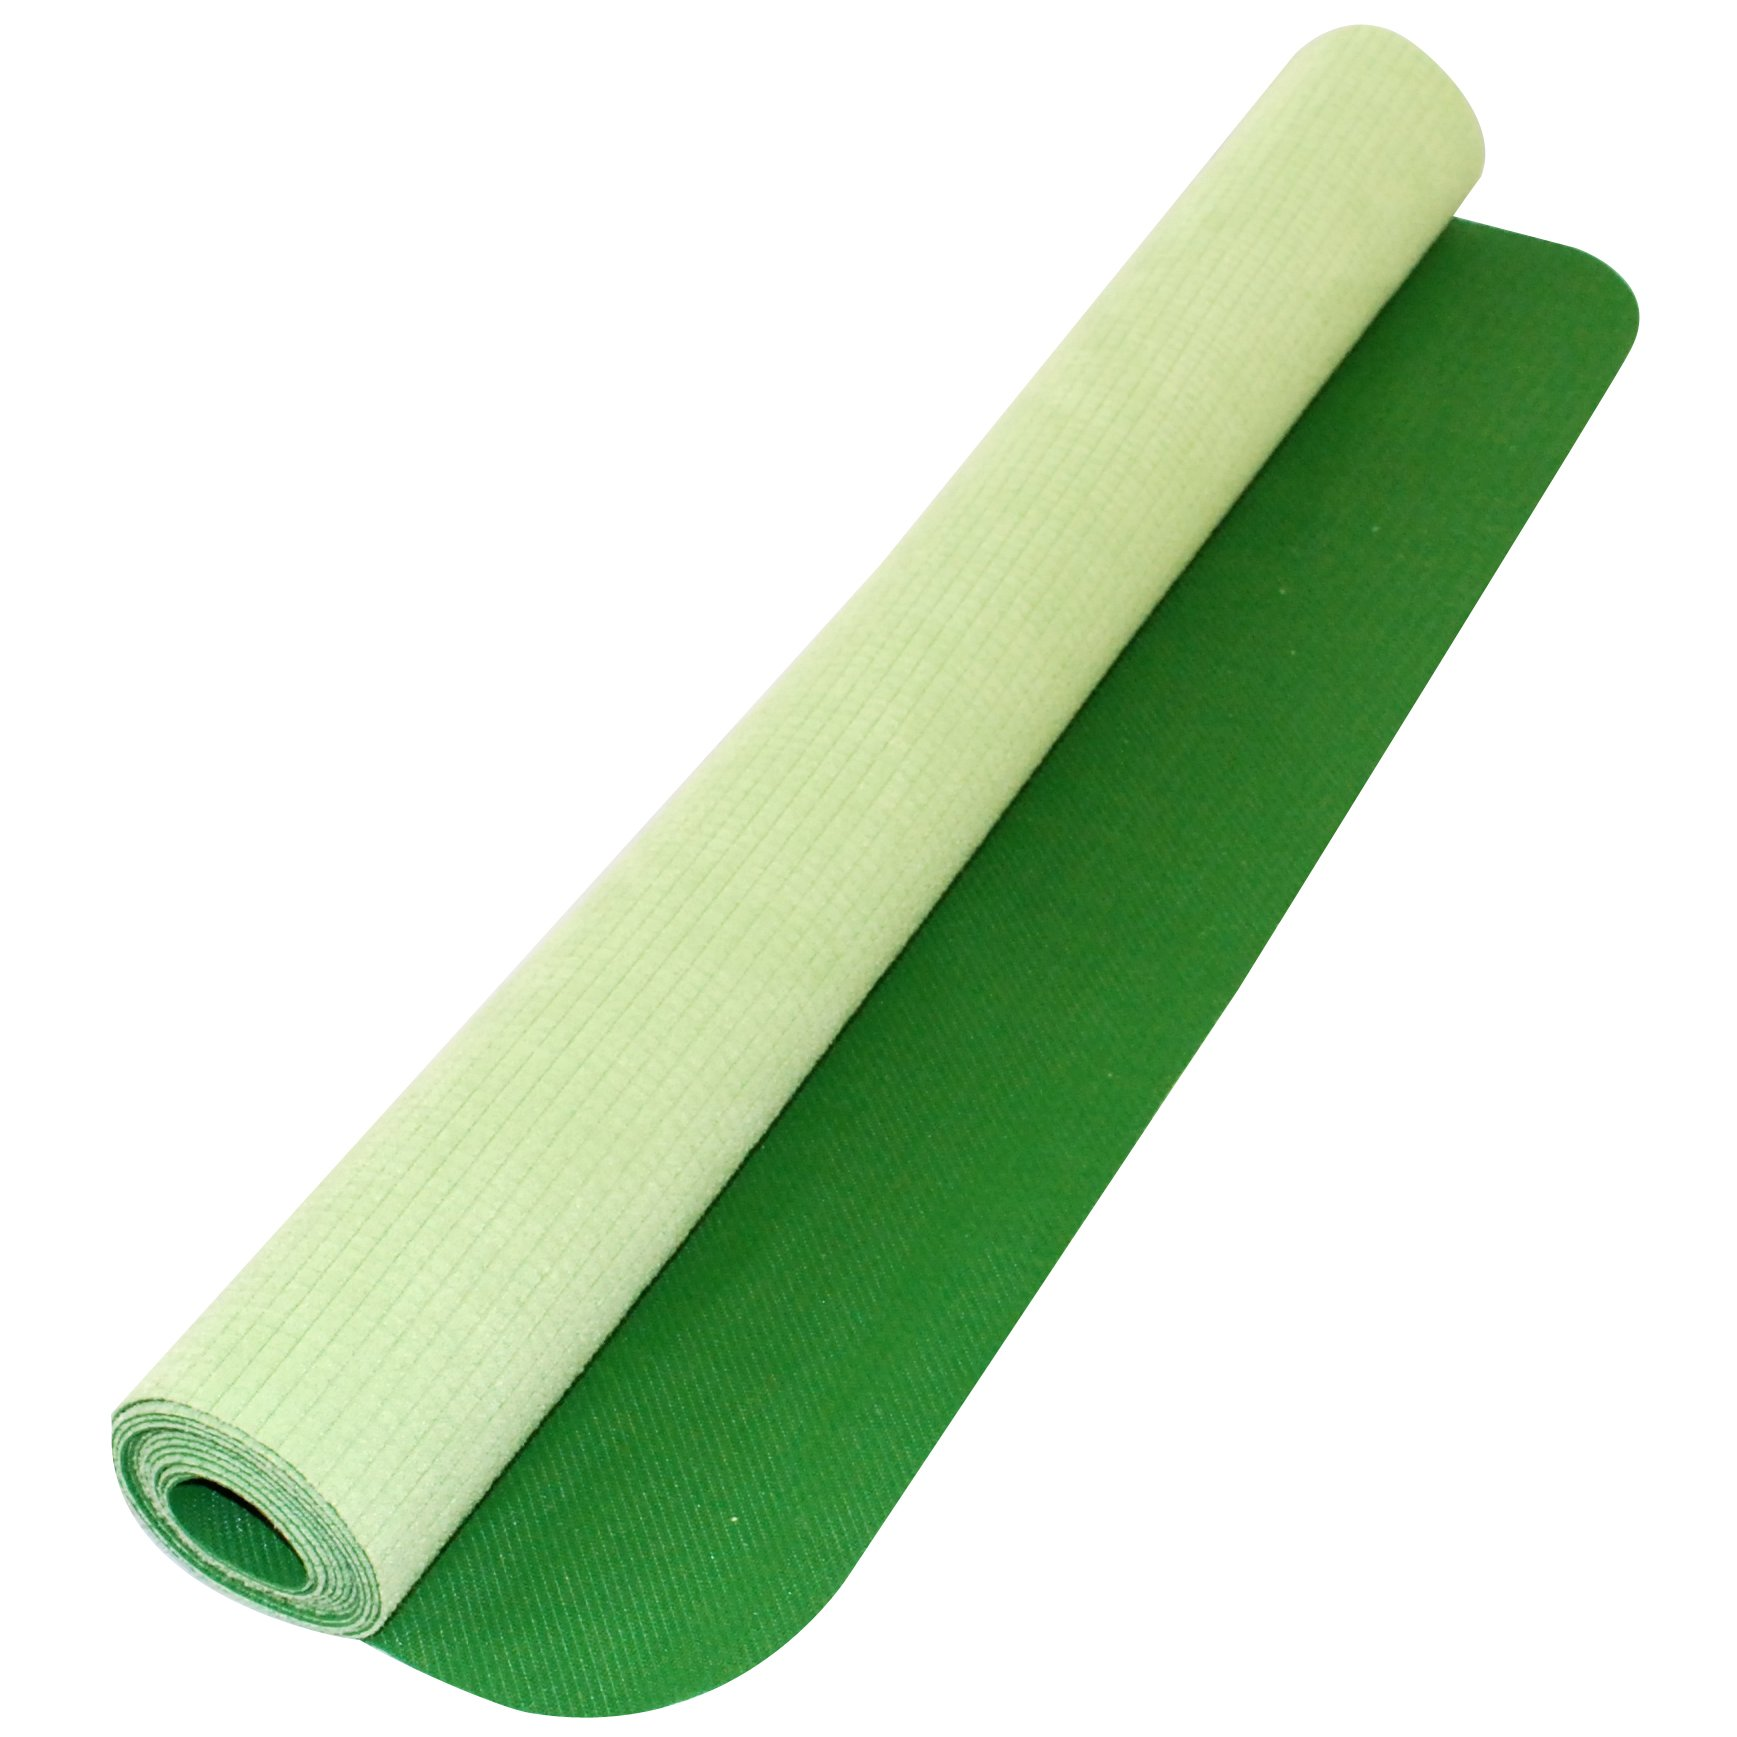 Yoga Direct Deluxe Rubber/Microfiber Travel Yoga Mat (Green)